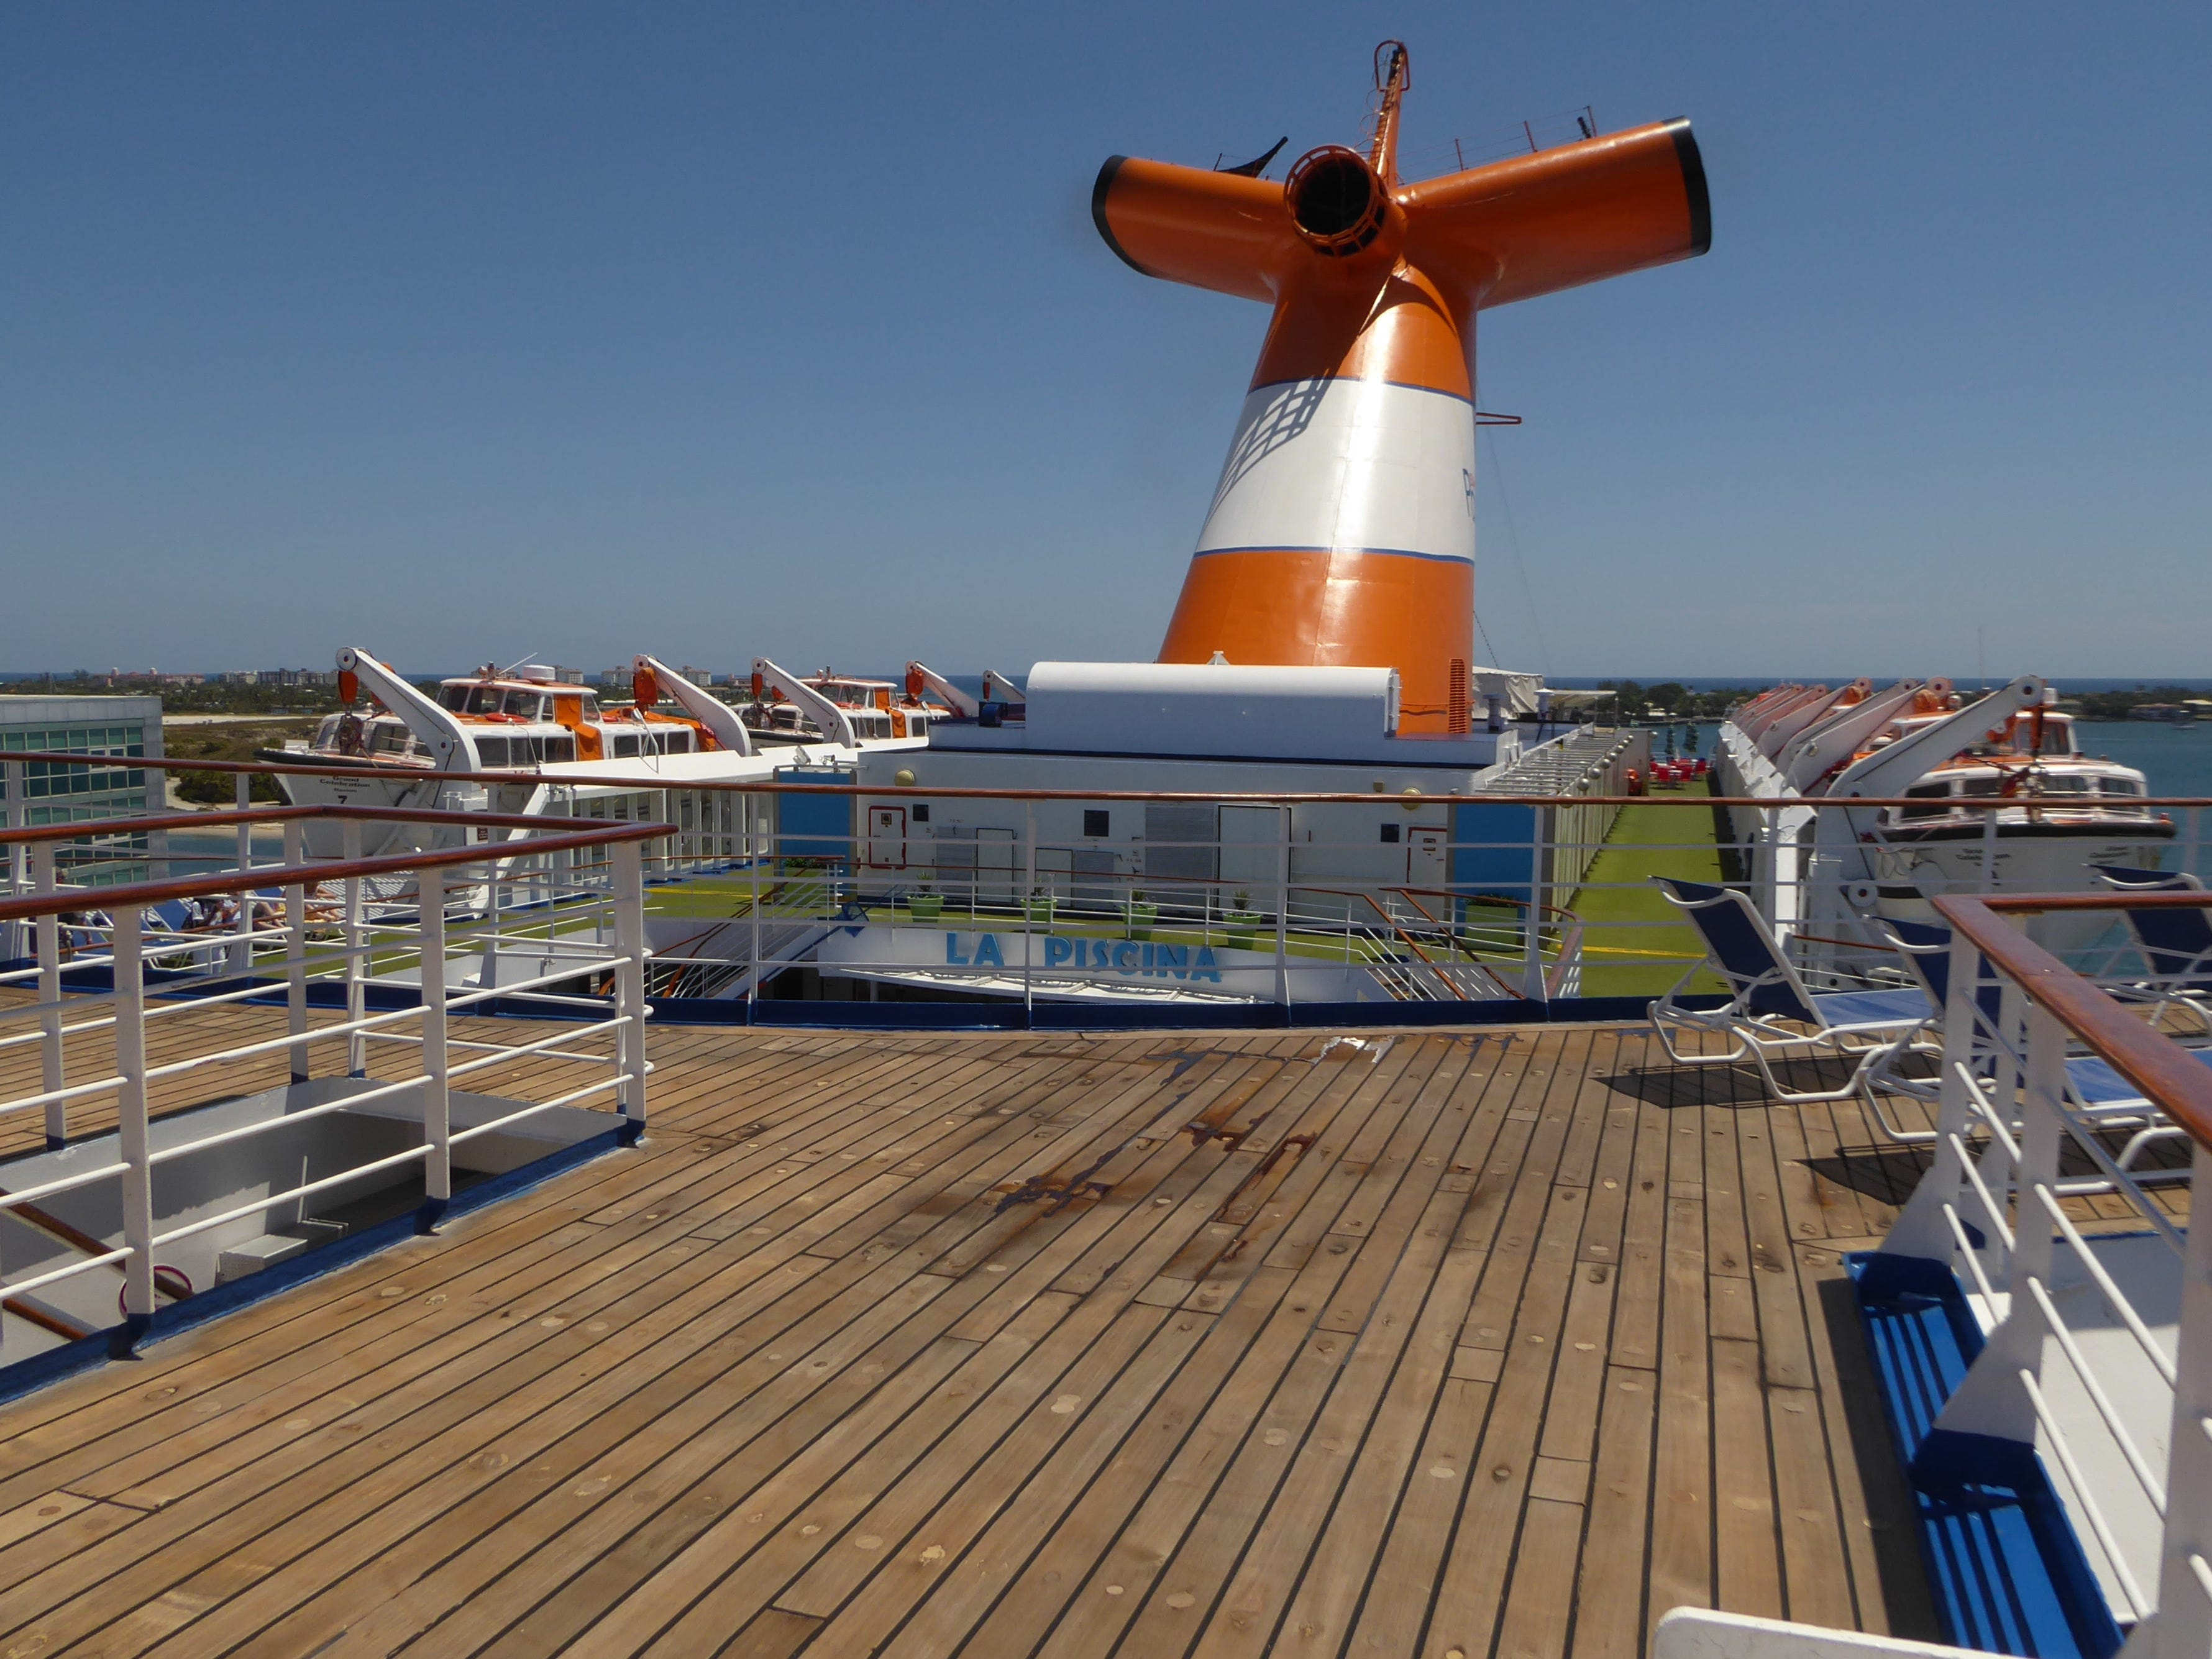 The aft portion of Sun Deck is also lined in teak.